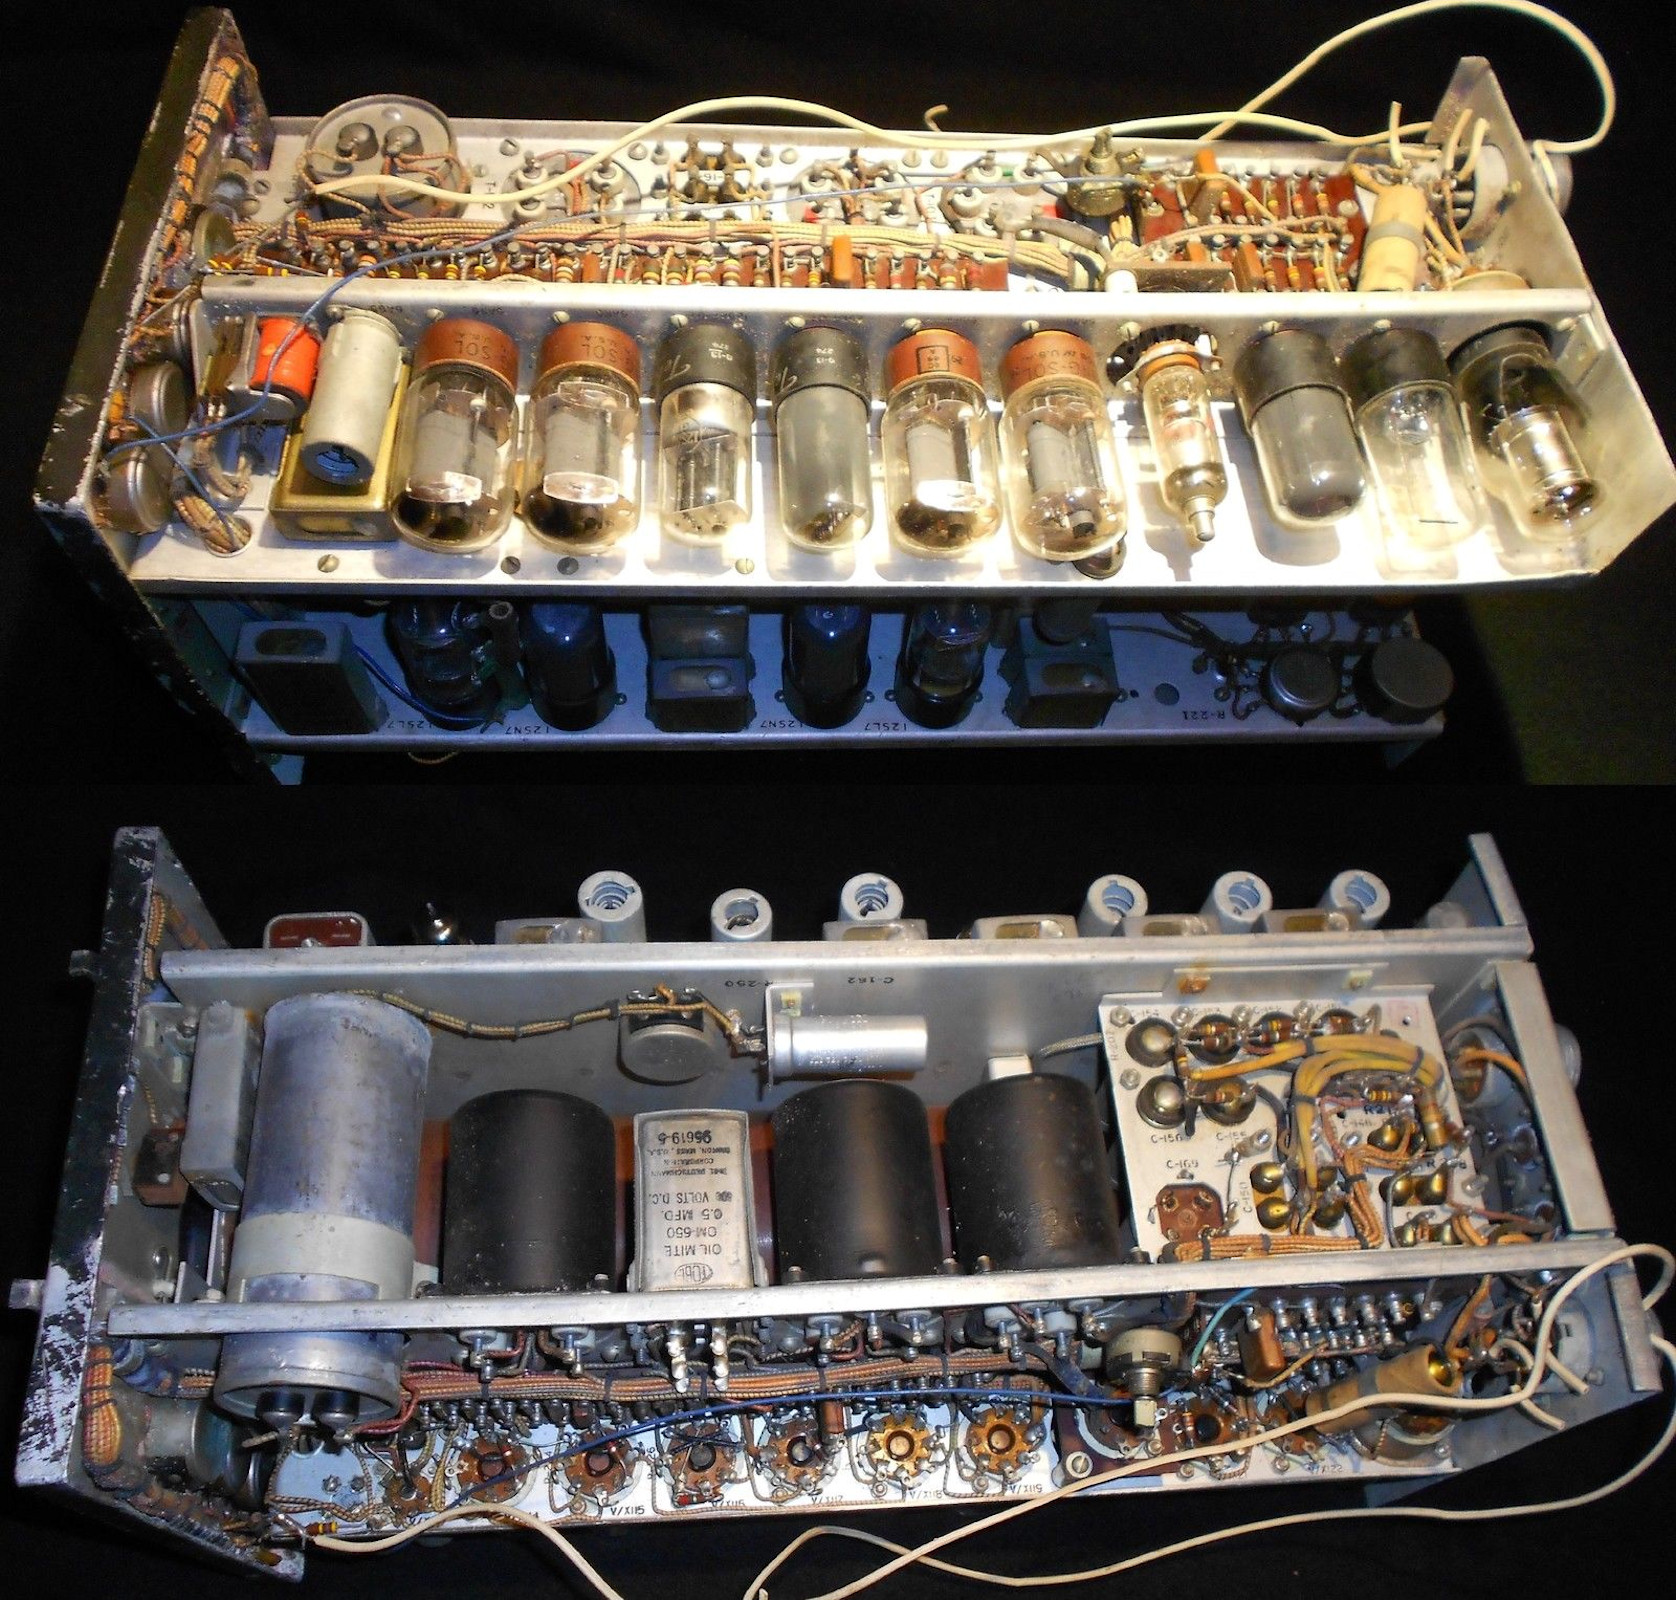 military cameras in views of inside wiring harness